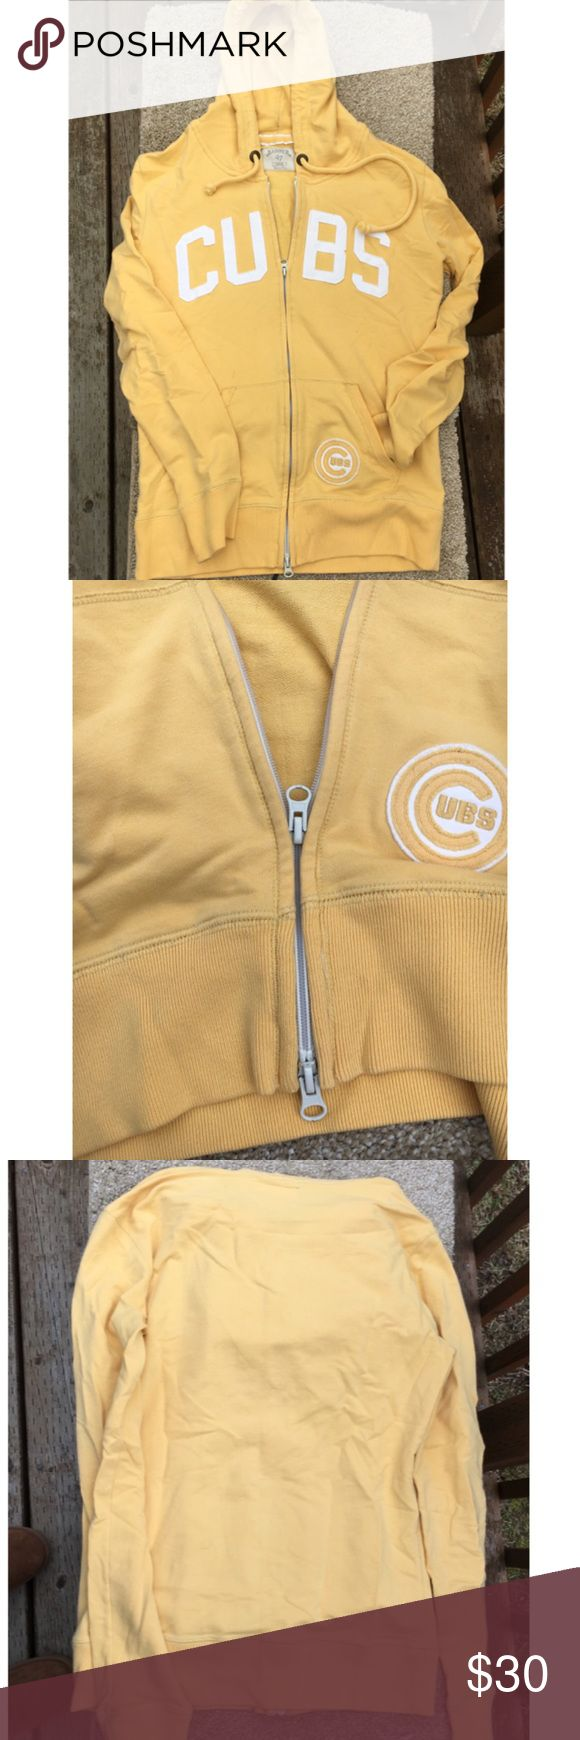 ⚾️ CUBS Womens Jacket Banner 47 so you know it's that distressed pre-worn feel softness! Slim fit, double zipper with sewn in Cubs patches on the chest & 1 of the 2 pockets. I've marked the color as yellow & gold because it is a deep mustard yellow. 95% cotton & 5% Lycra.   Authentic (most receipts have been posted).  No trades  ✅Only respectable offers made thru the OFFER tool accepted ❣️Please be kind as that's what you'll get in return ☮️Thanks for the opportunity to share my goods w/ u…